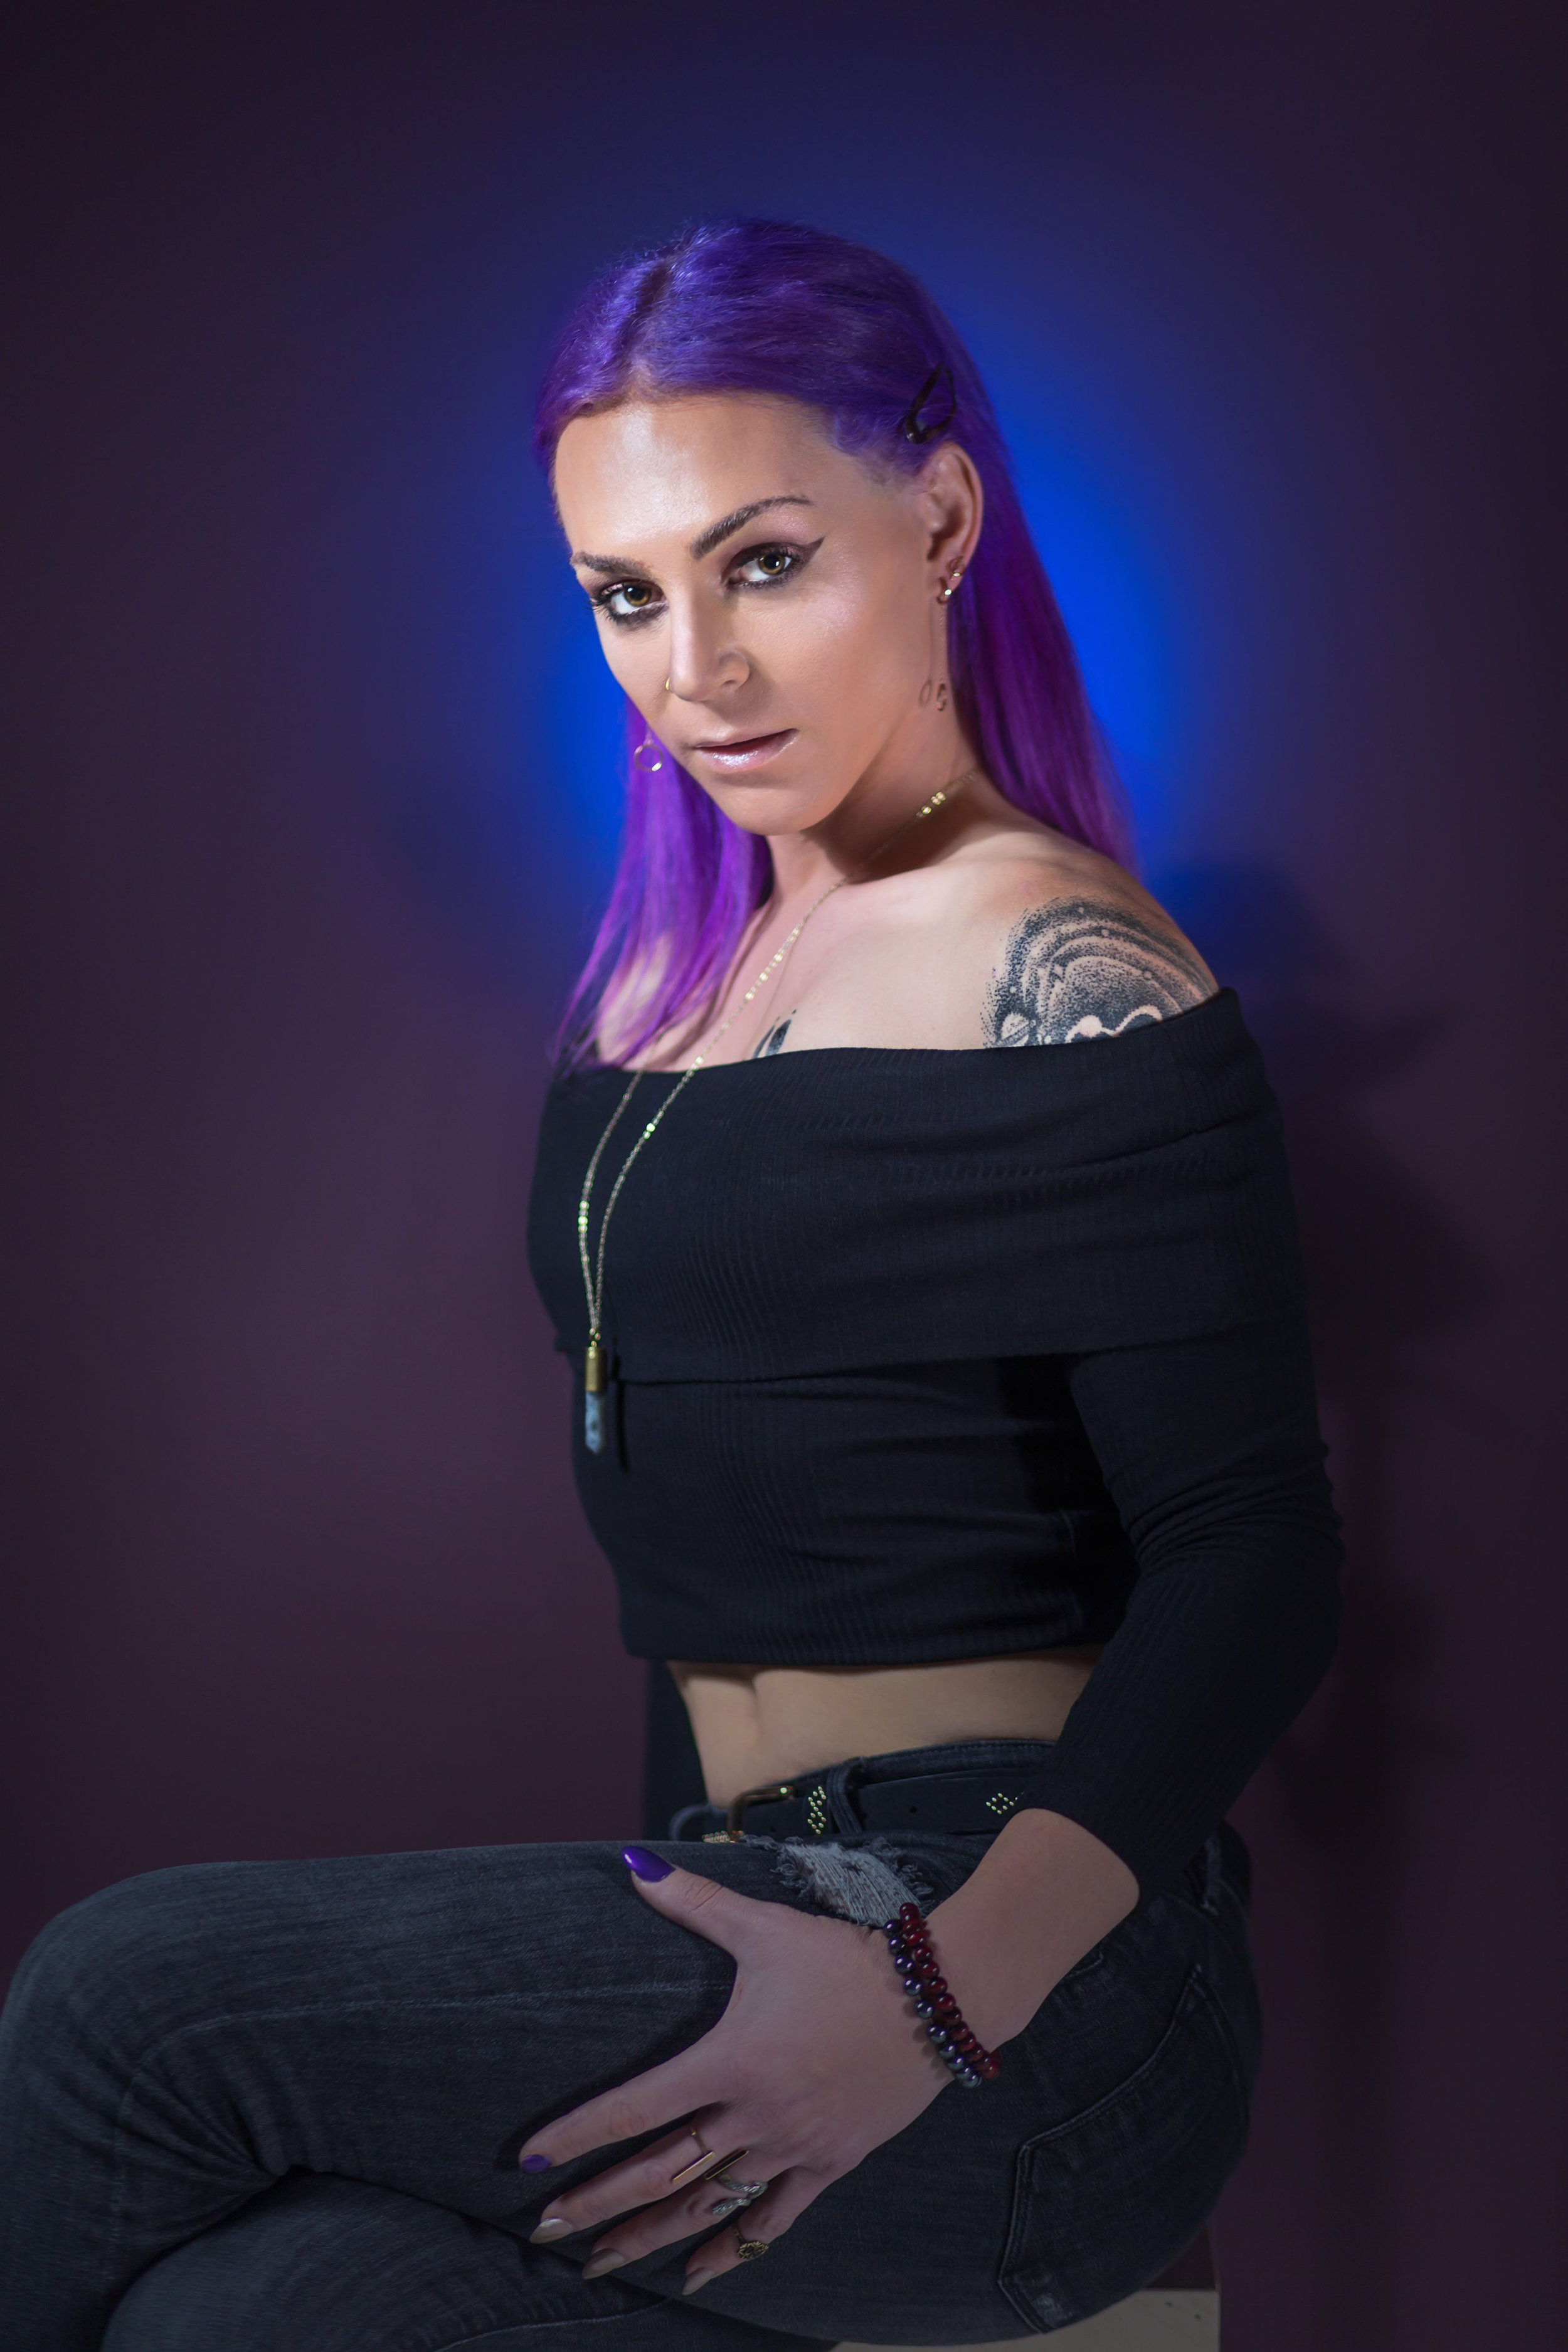 Black top and jeans sitting copy.jpg